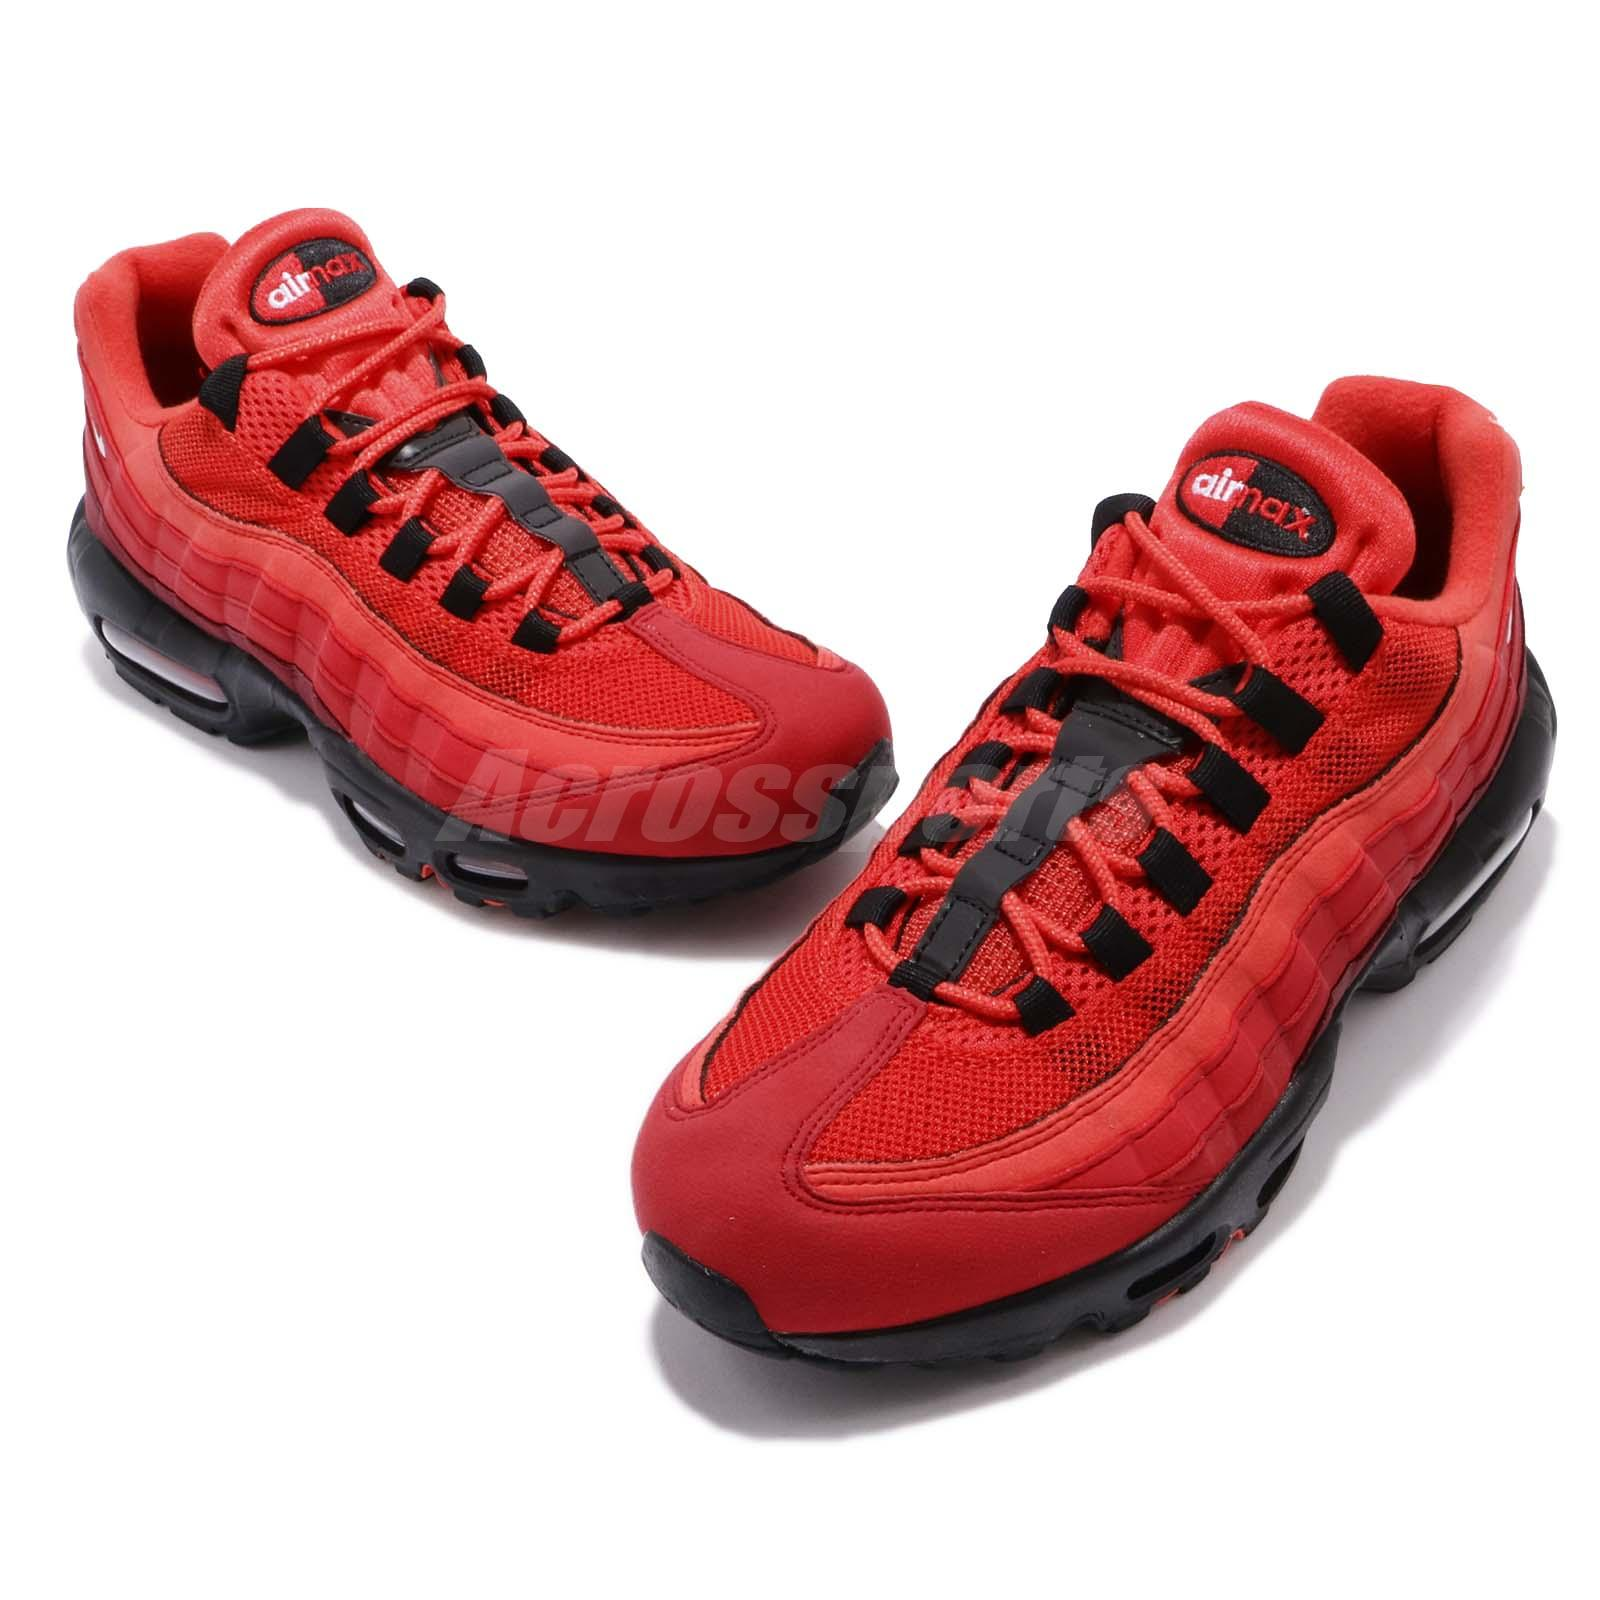 on sale fe94d b9ca8 Nike Air Max 95 OG Habanero Red Men Running Lifestyle Shoes Sneakers ...